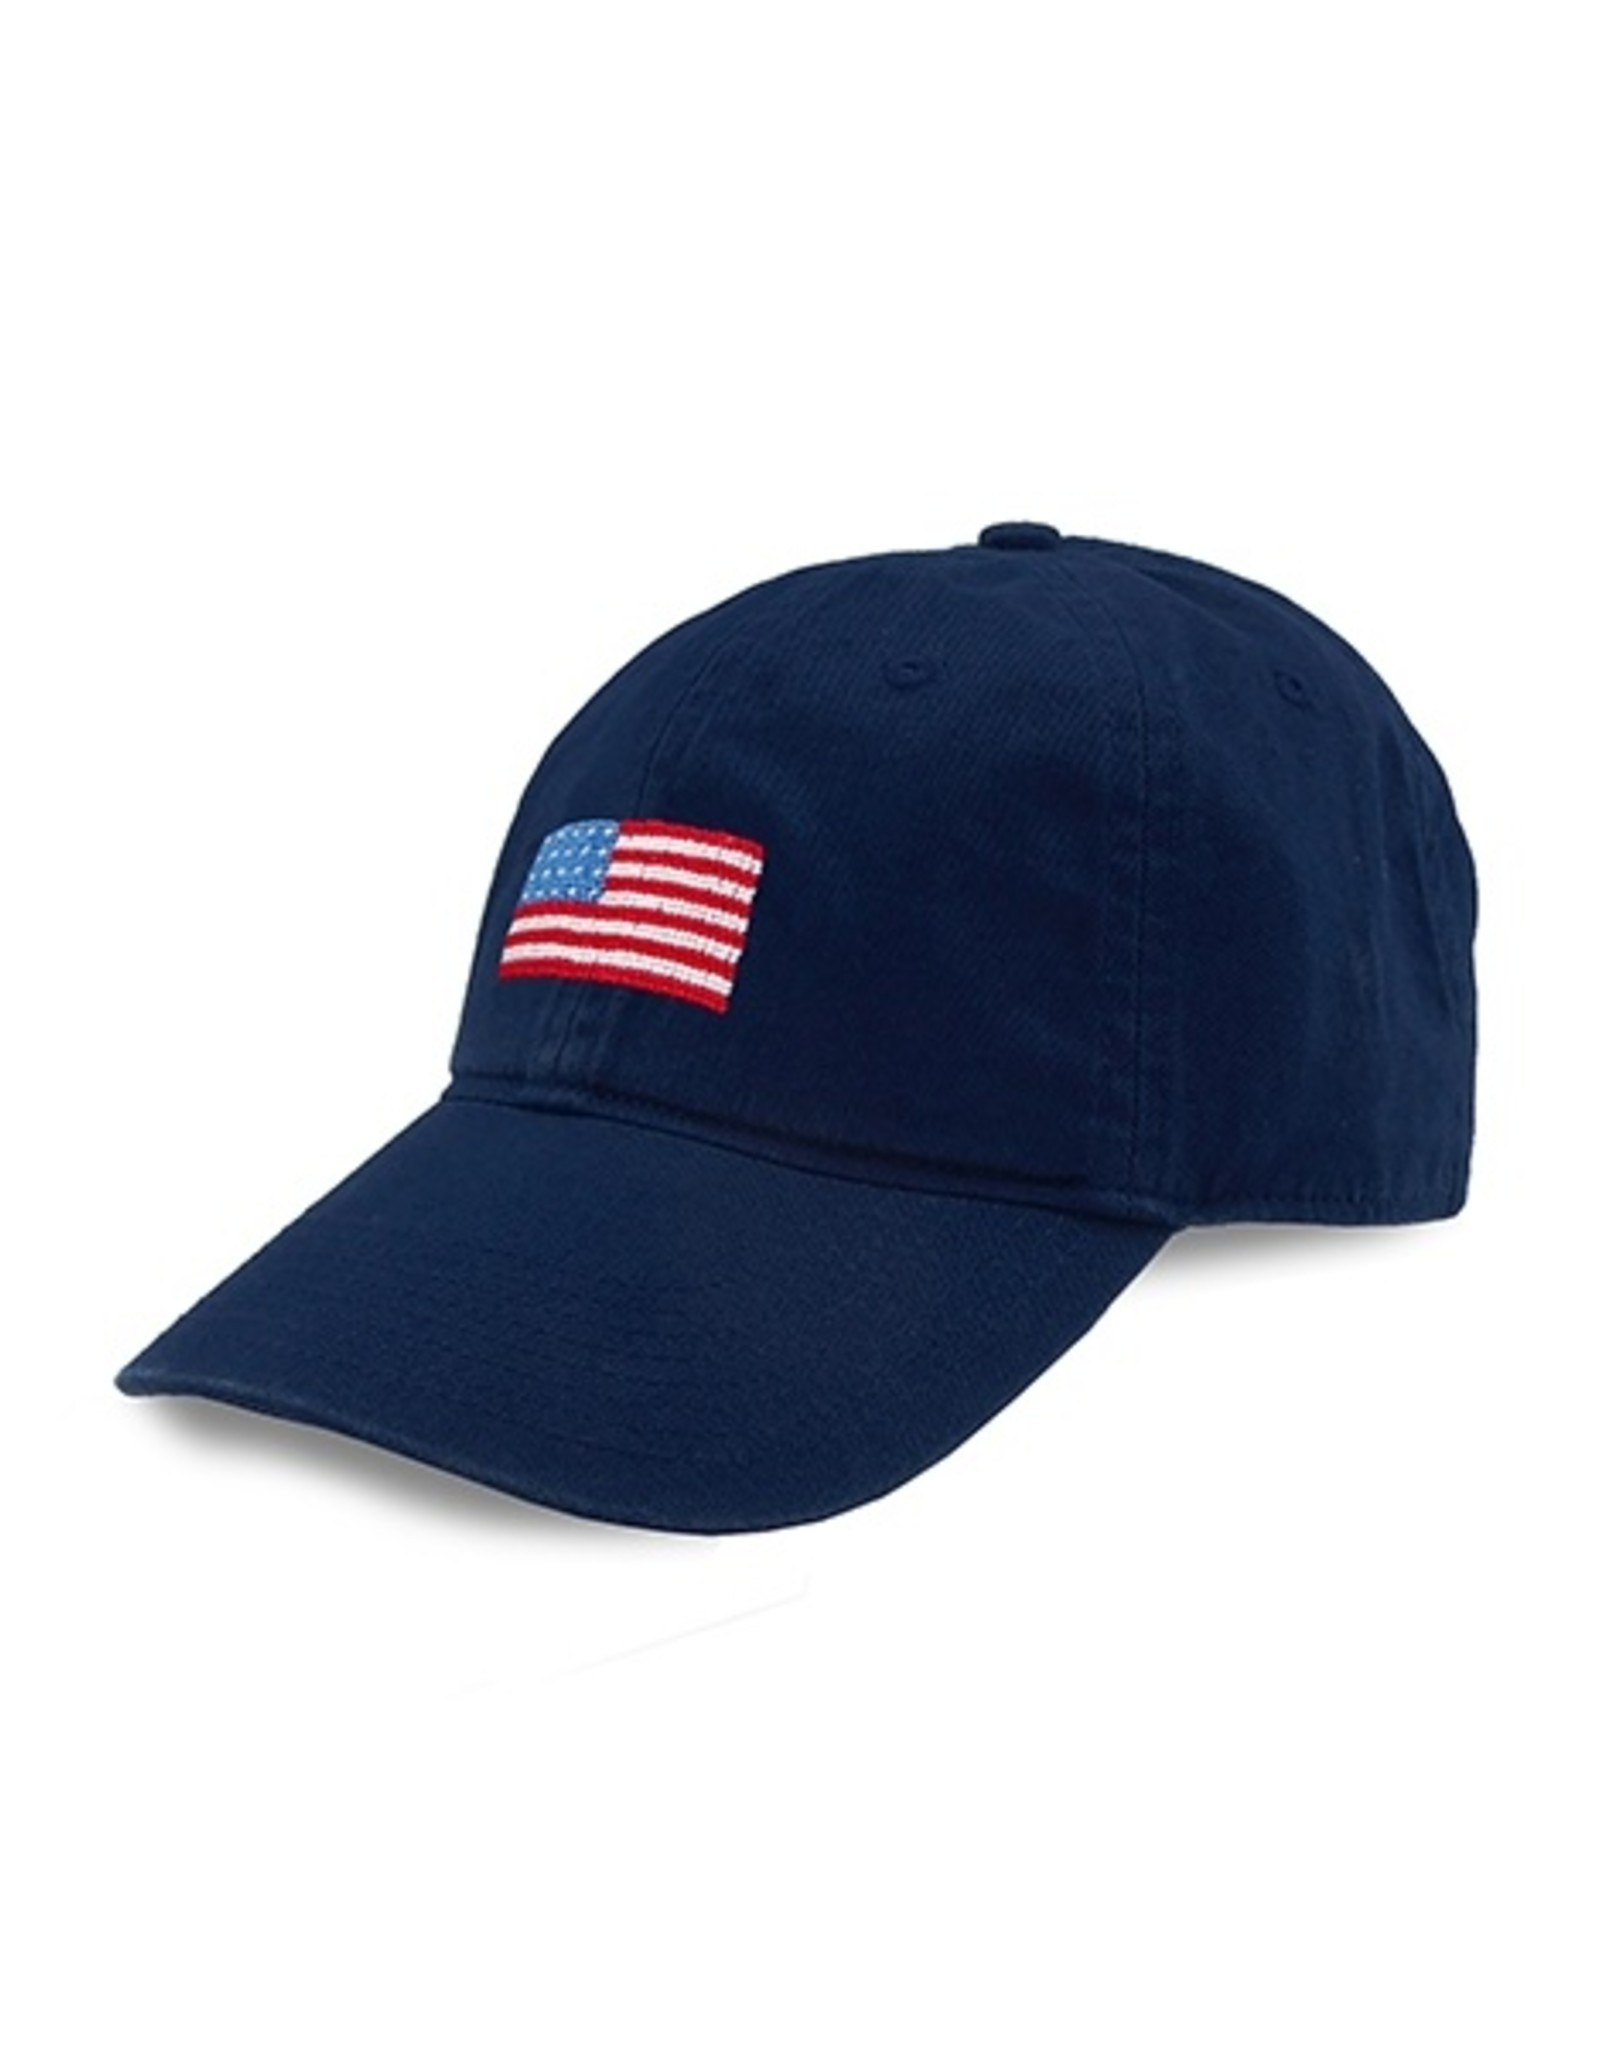 Smathers and Branson American Flag Hat (Navy)